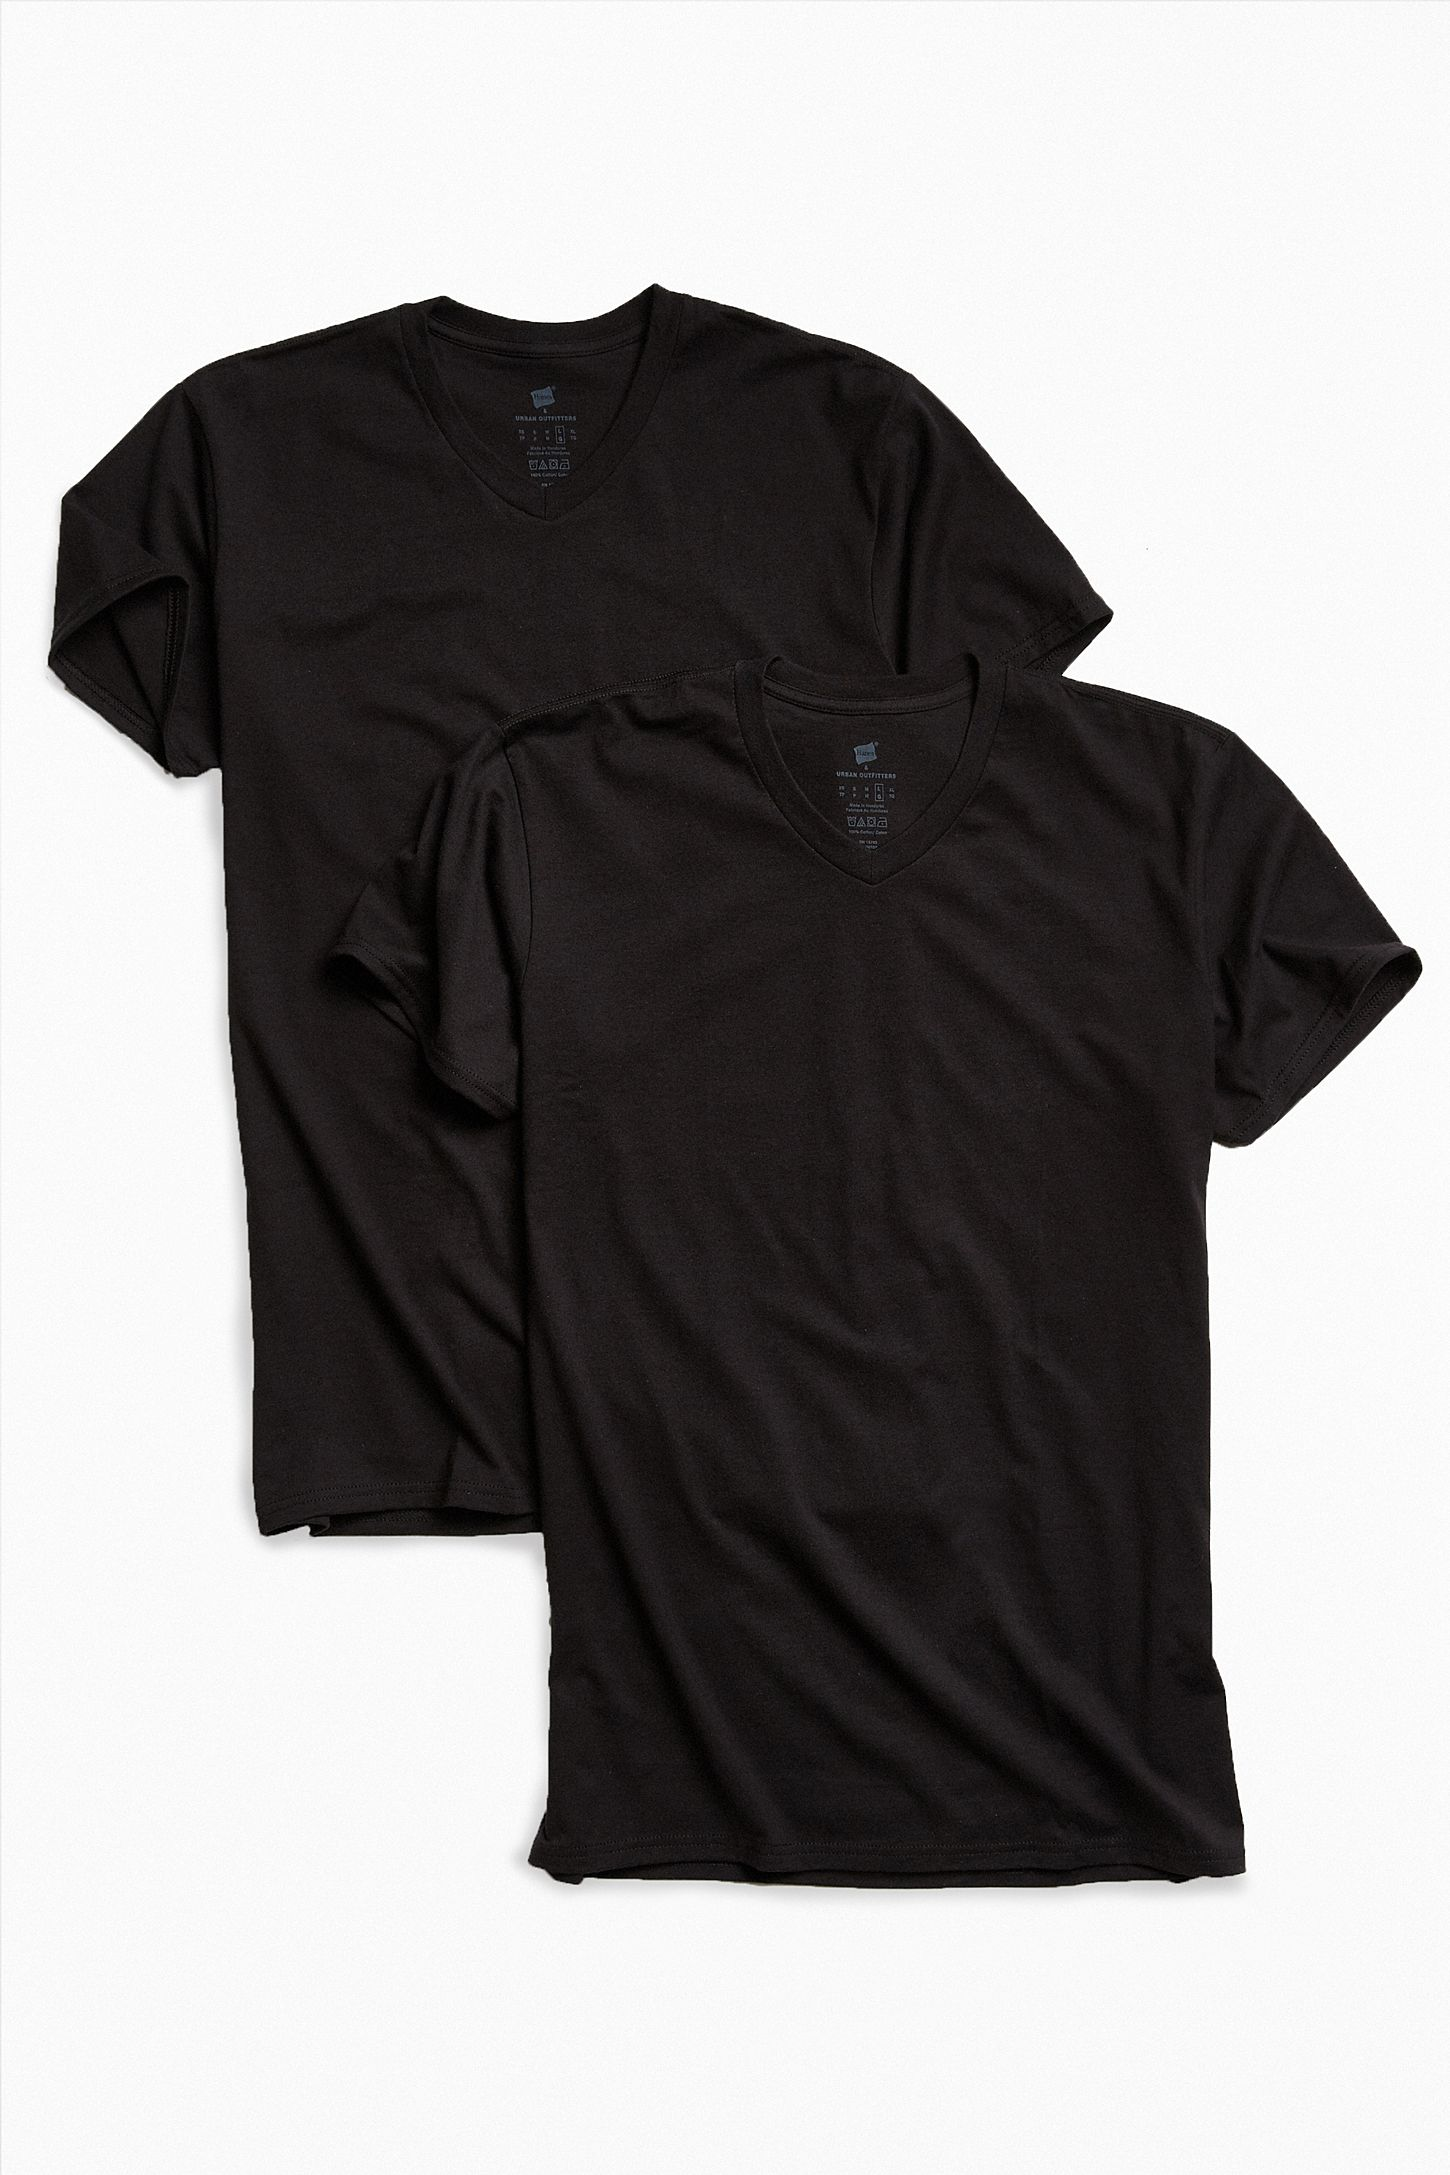 8b93b22ee Buy Hanes T Shirts Online – EDGE Engineering and Consulting Limited